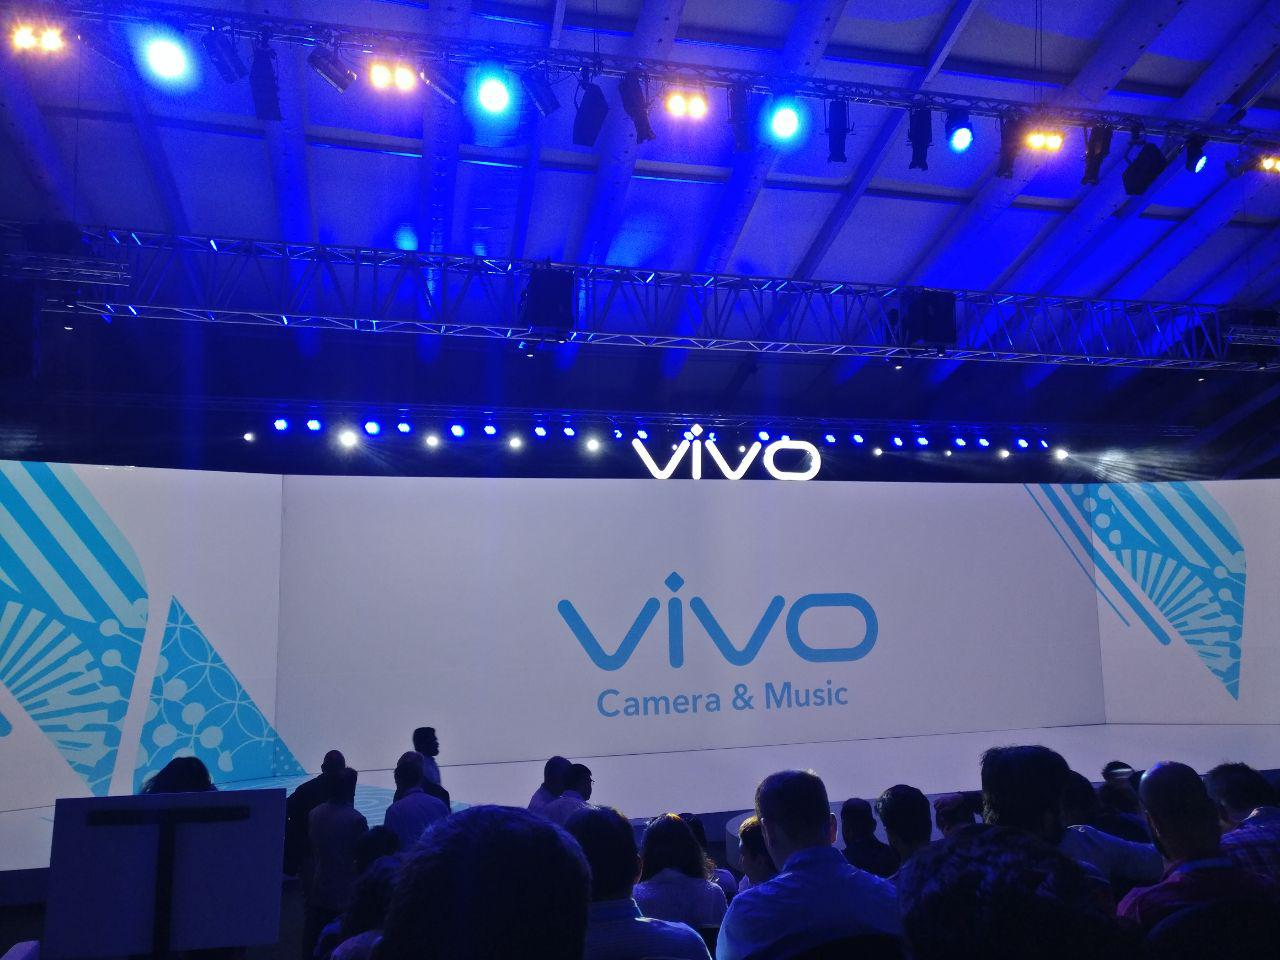 Pubg Wallpaper For Vivo V9: Vivo V9 To Launch In India With AI Camera And A Notch